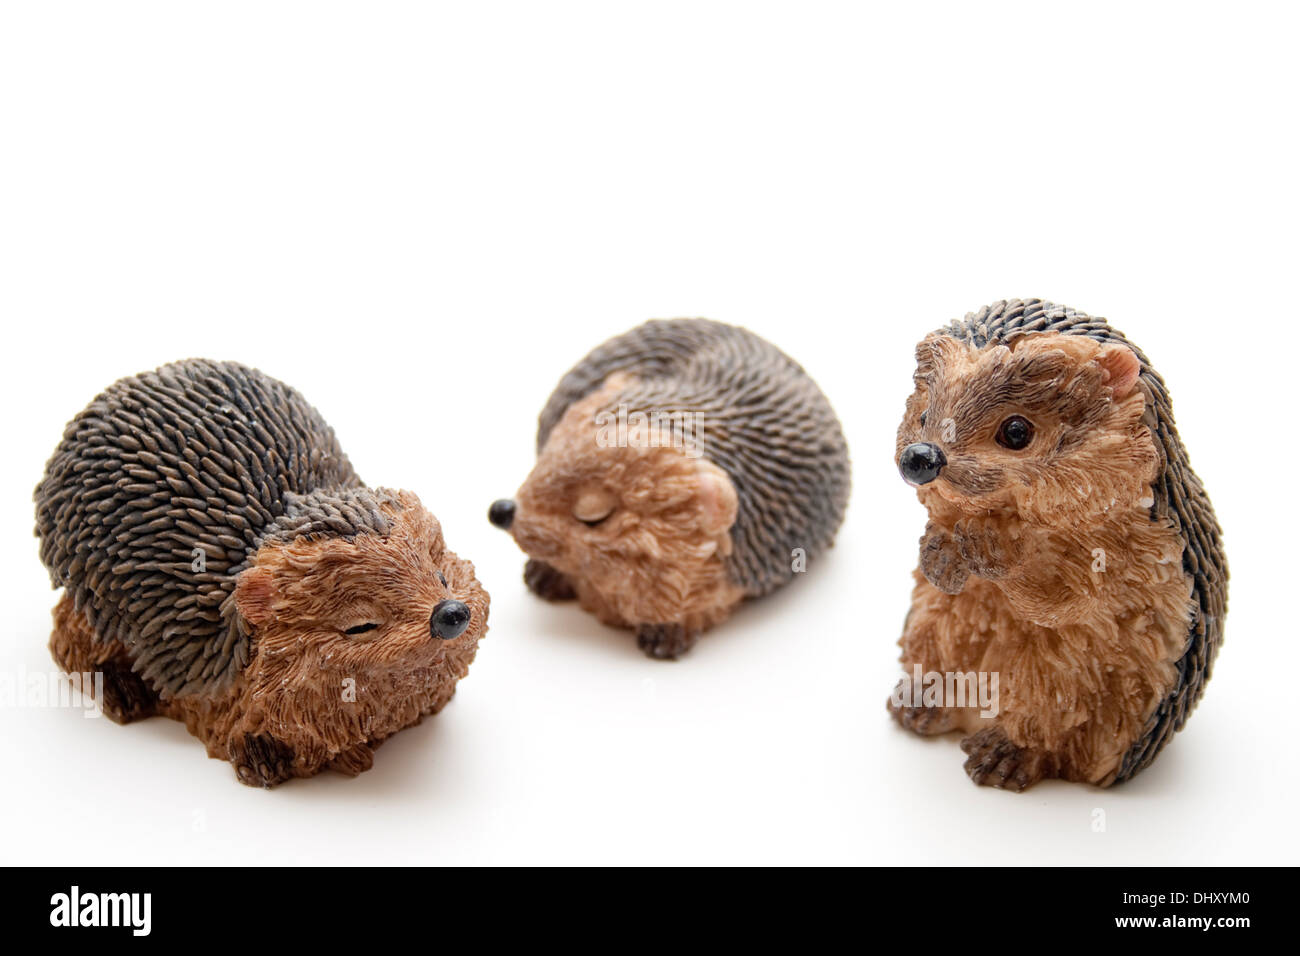 Hedgehog figure - Stock Image